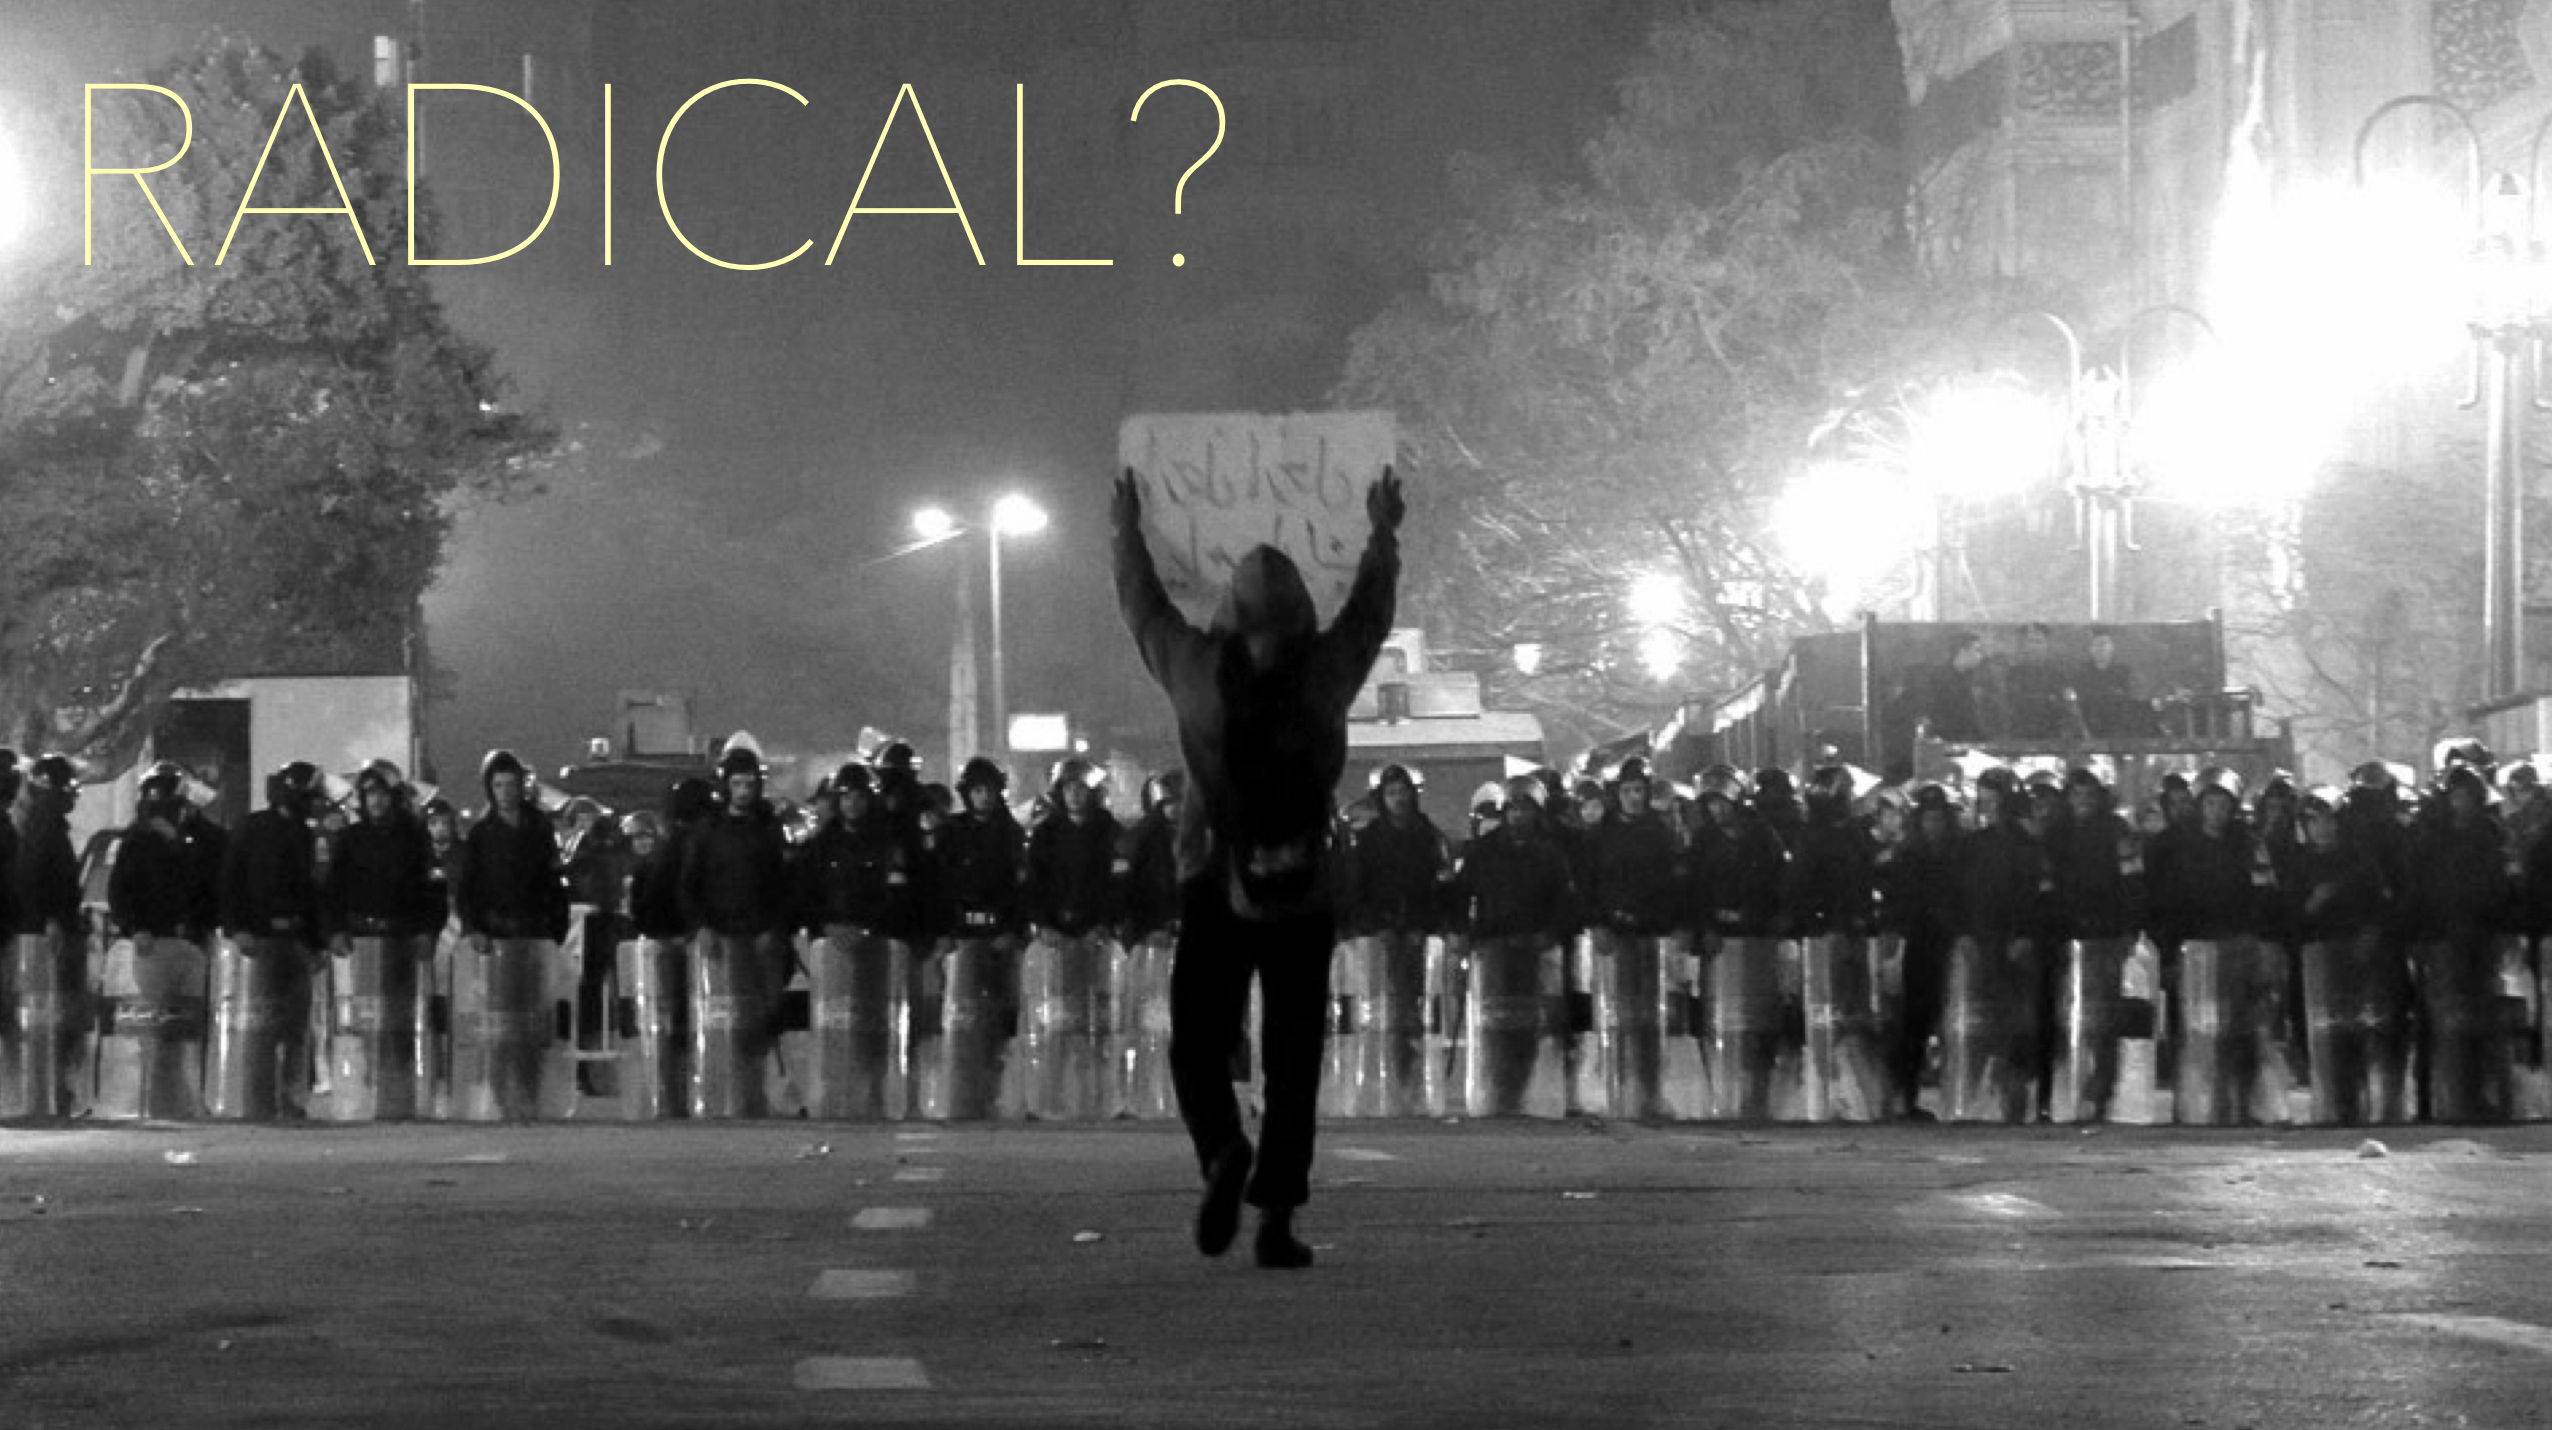 Radical? Series Moniker